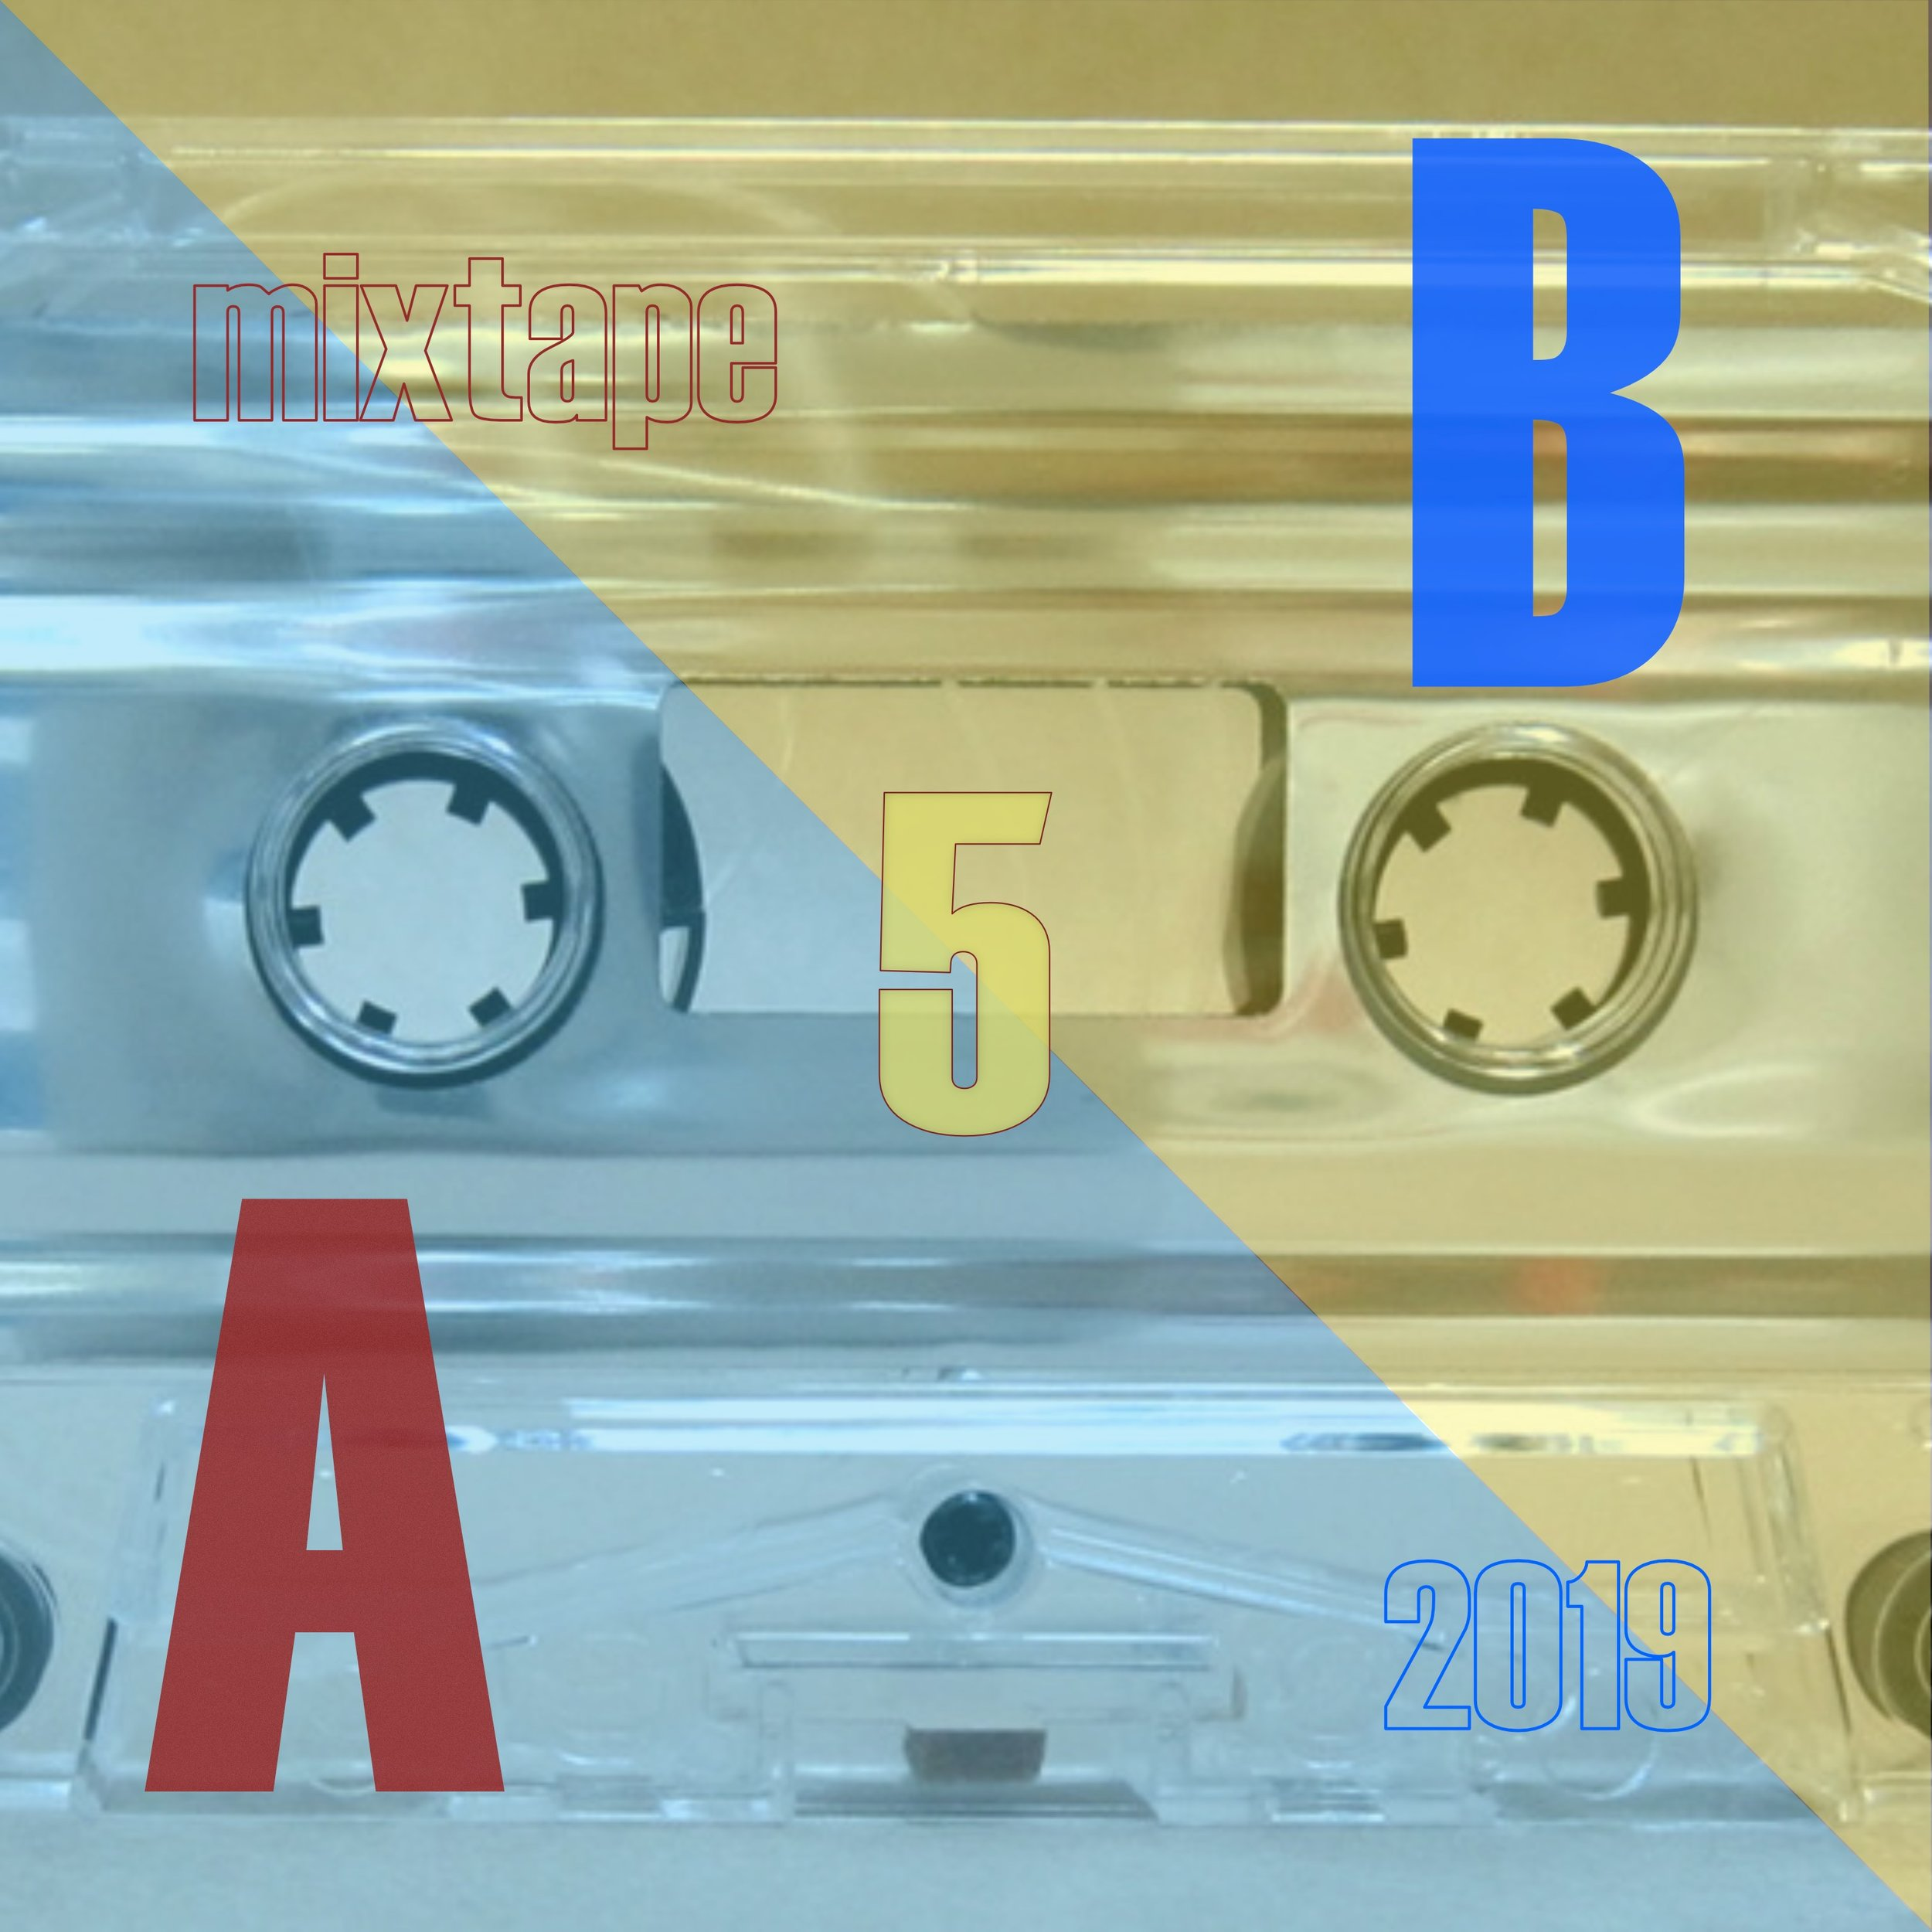 #MixTape No.5 - Stay on Track from A-side to B-side - In total, that's nearly 300 tracks to check out. Get cracking, then.